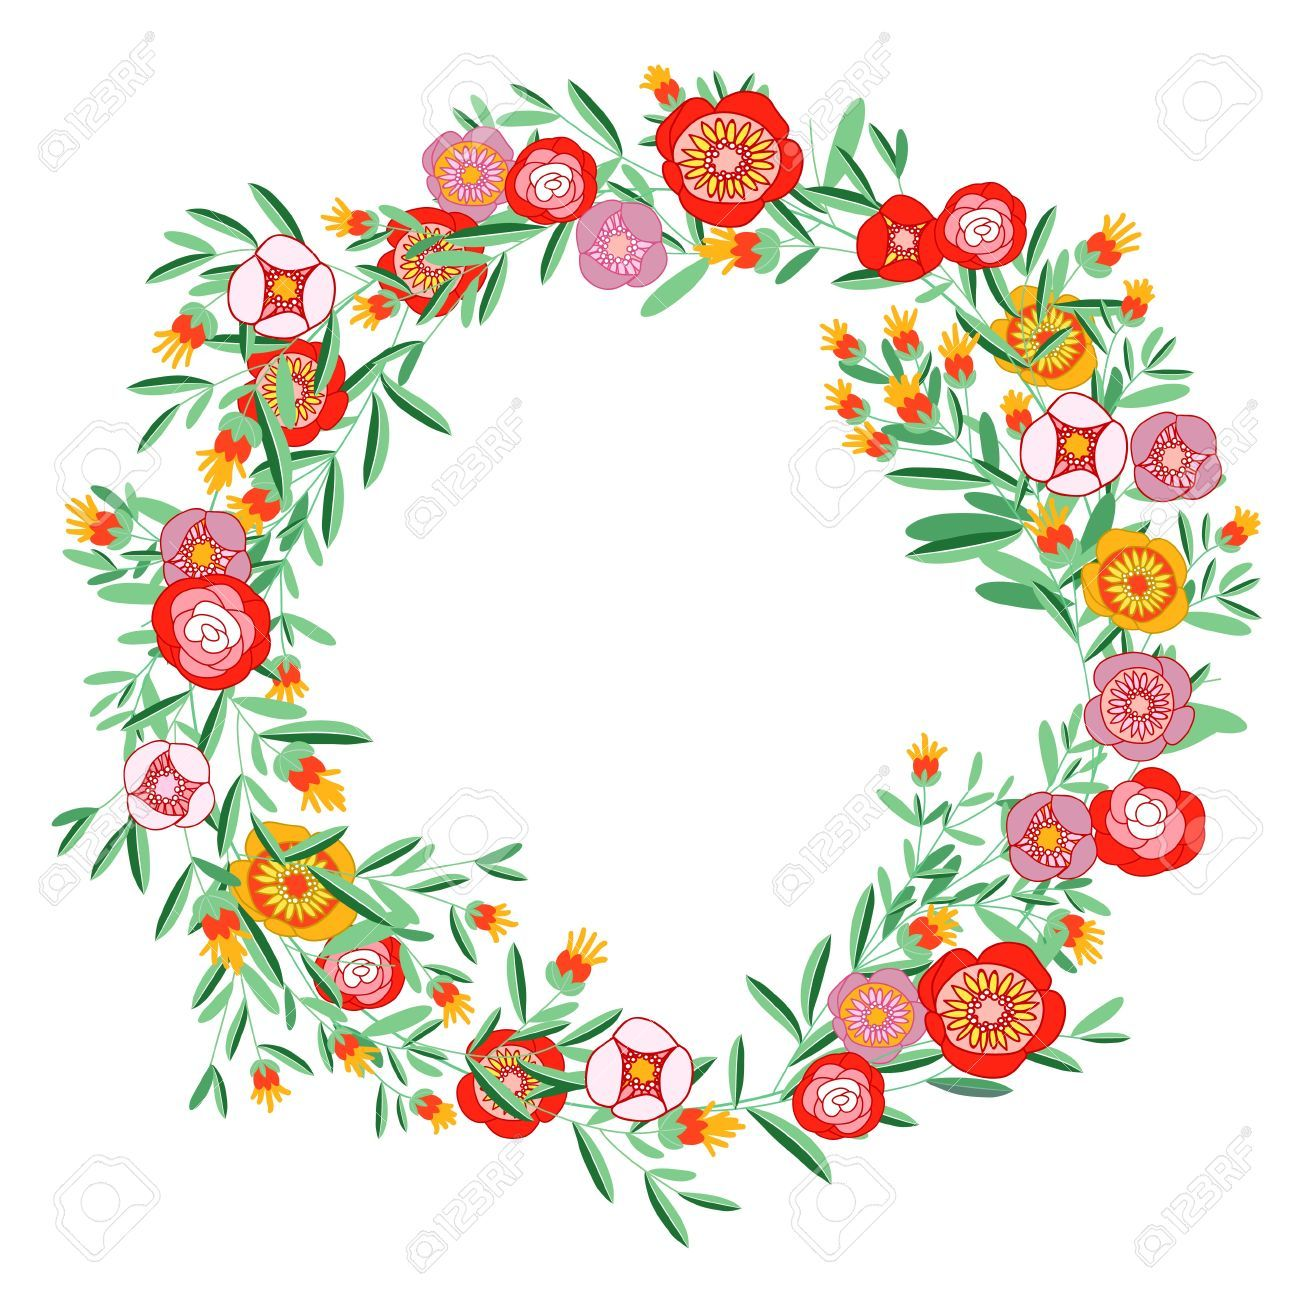 circle floral wreath clip art google search diy projects rh pinterest com Wedding Flower Clip Art wedding wreath clipart free